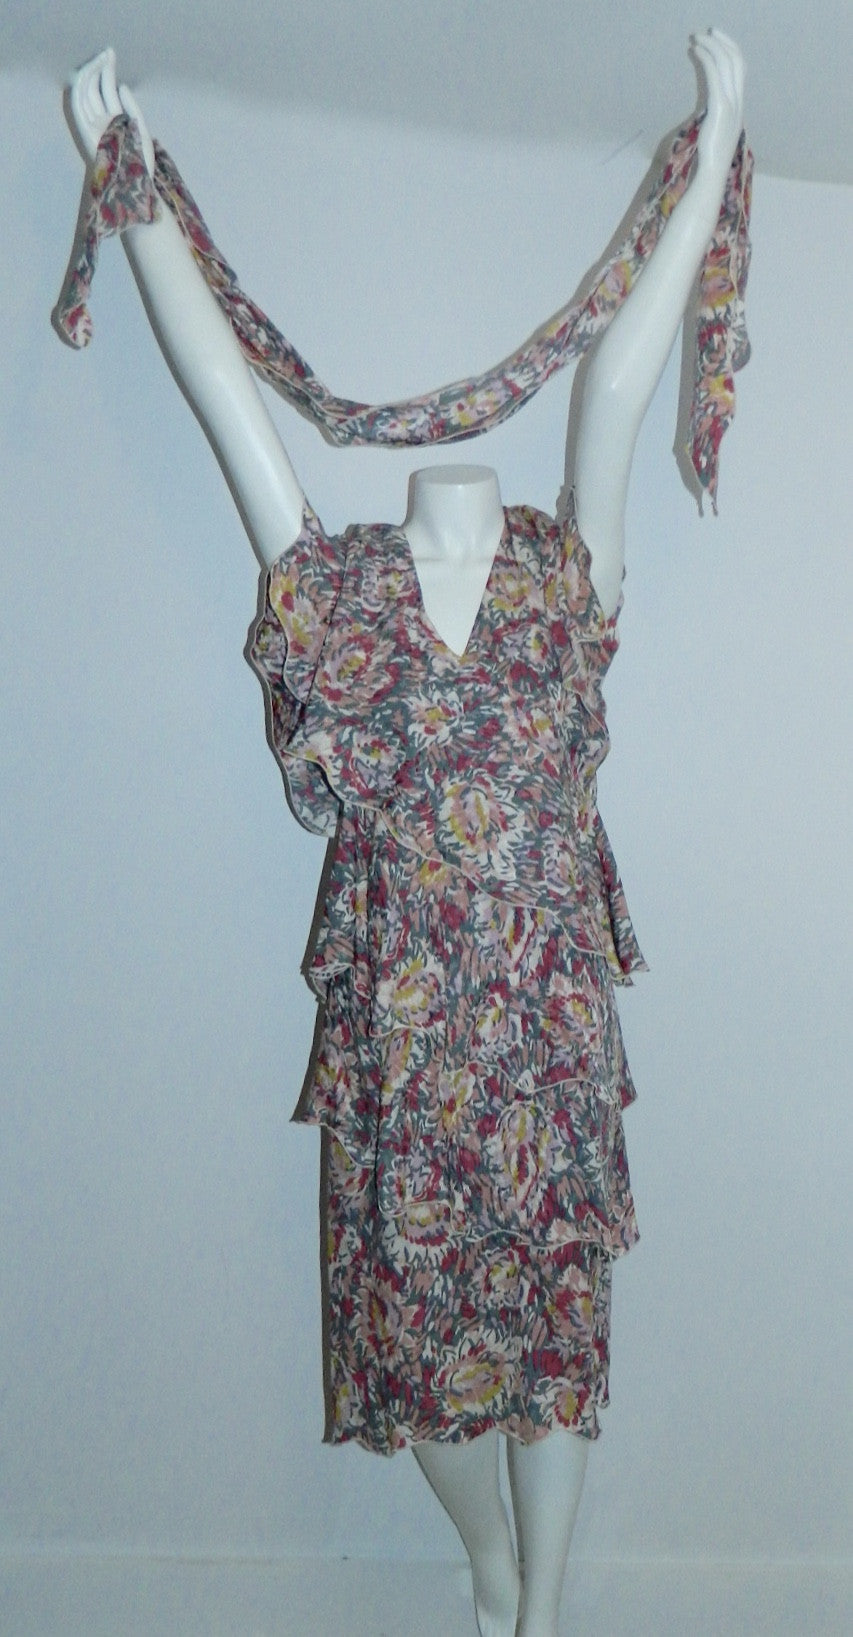 vintage 1980s Holly's Harp dress pink tiered silk floral dress XS